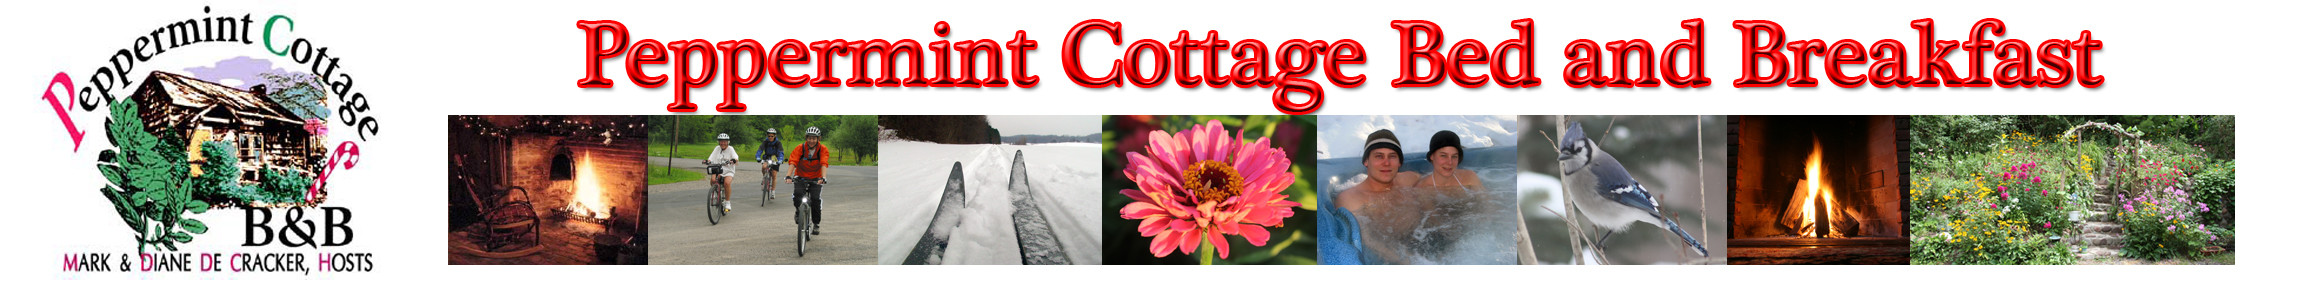 Peppermint Cottage Bed & Breakfast